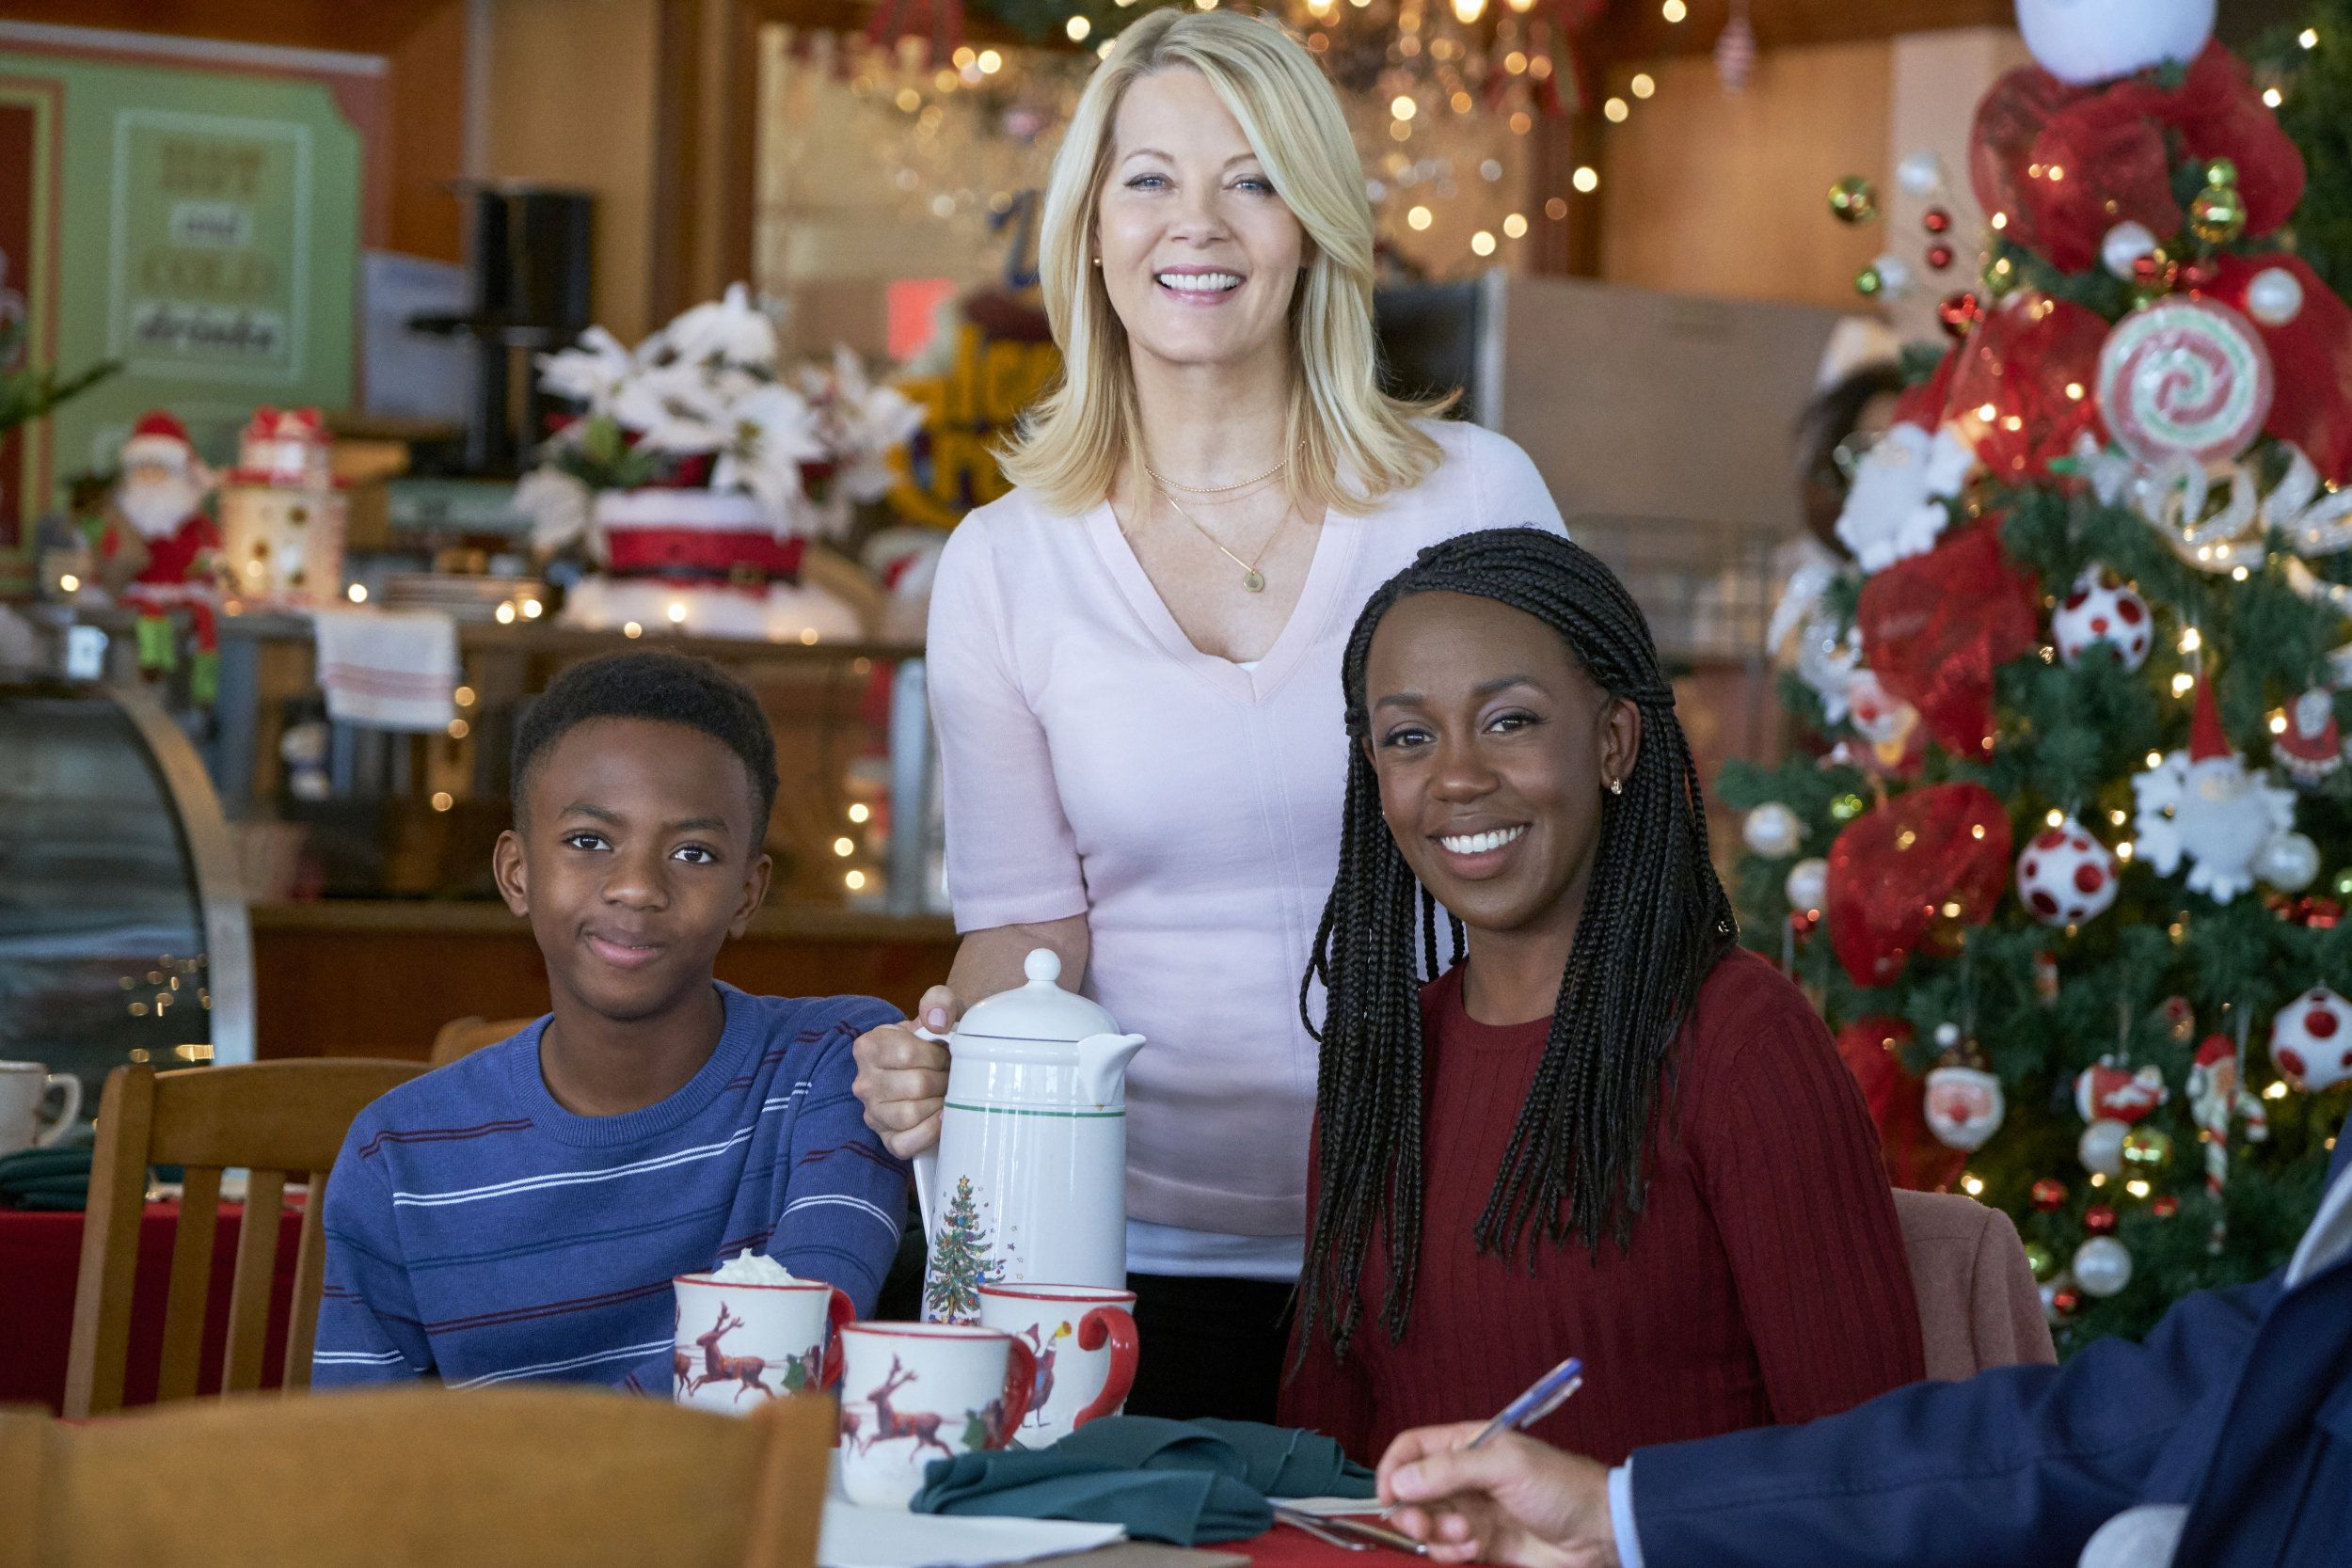 Christmas In Evergreen Letters To Santa.Find Out About The Cast Of The Hallmark Channel Original